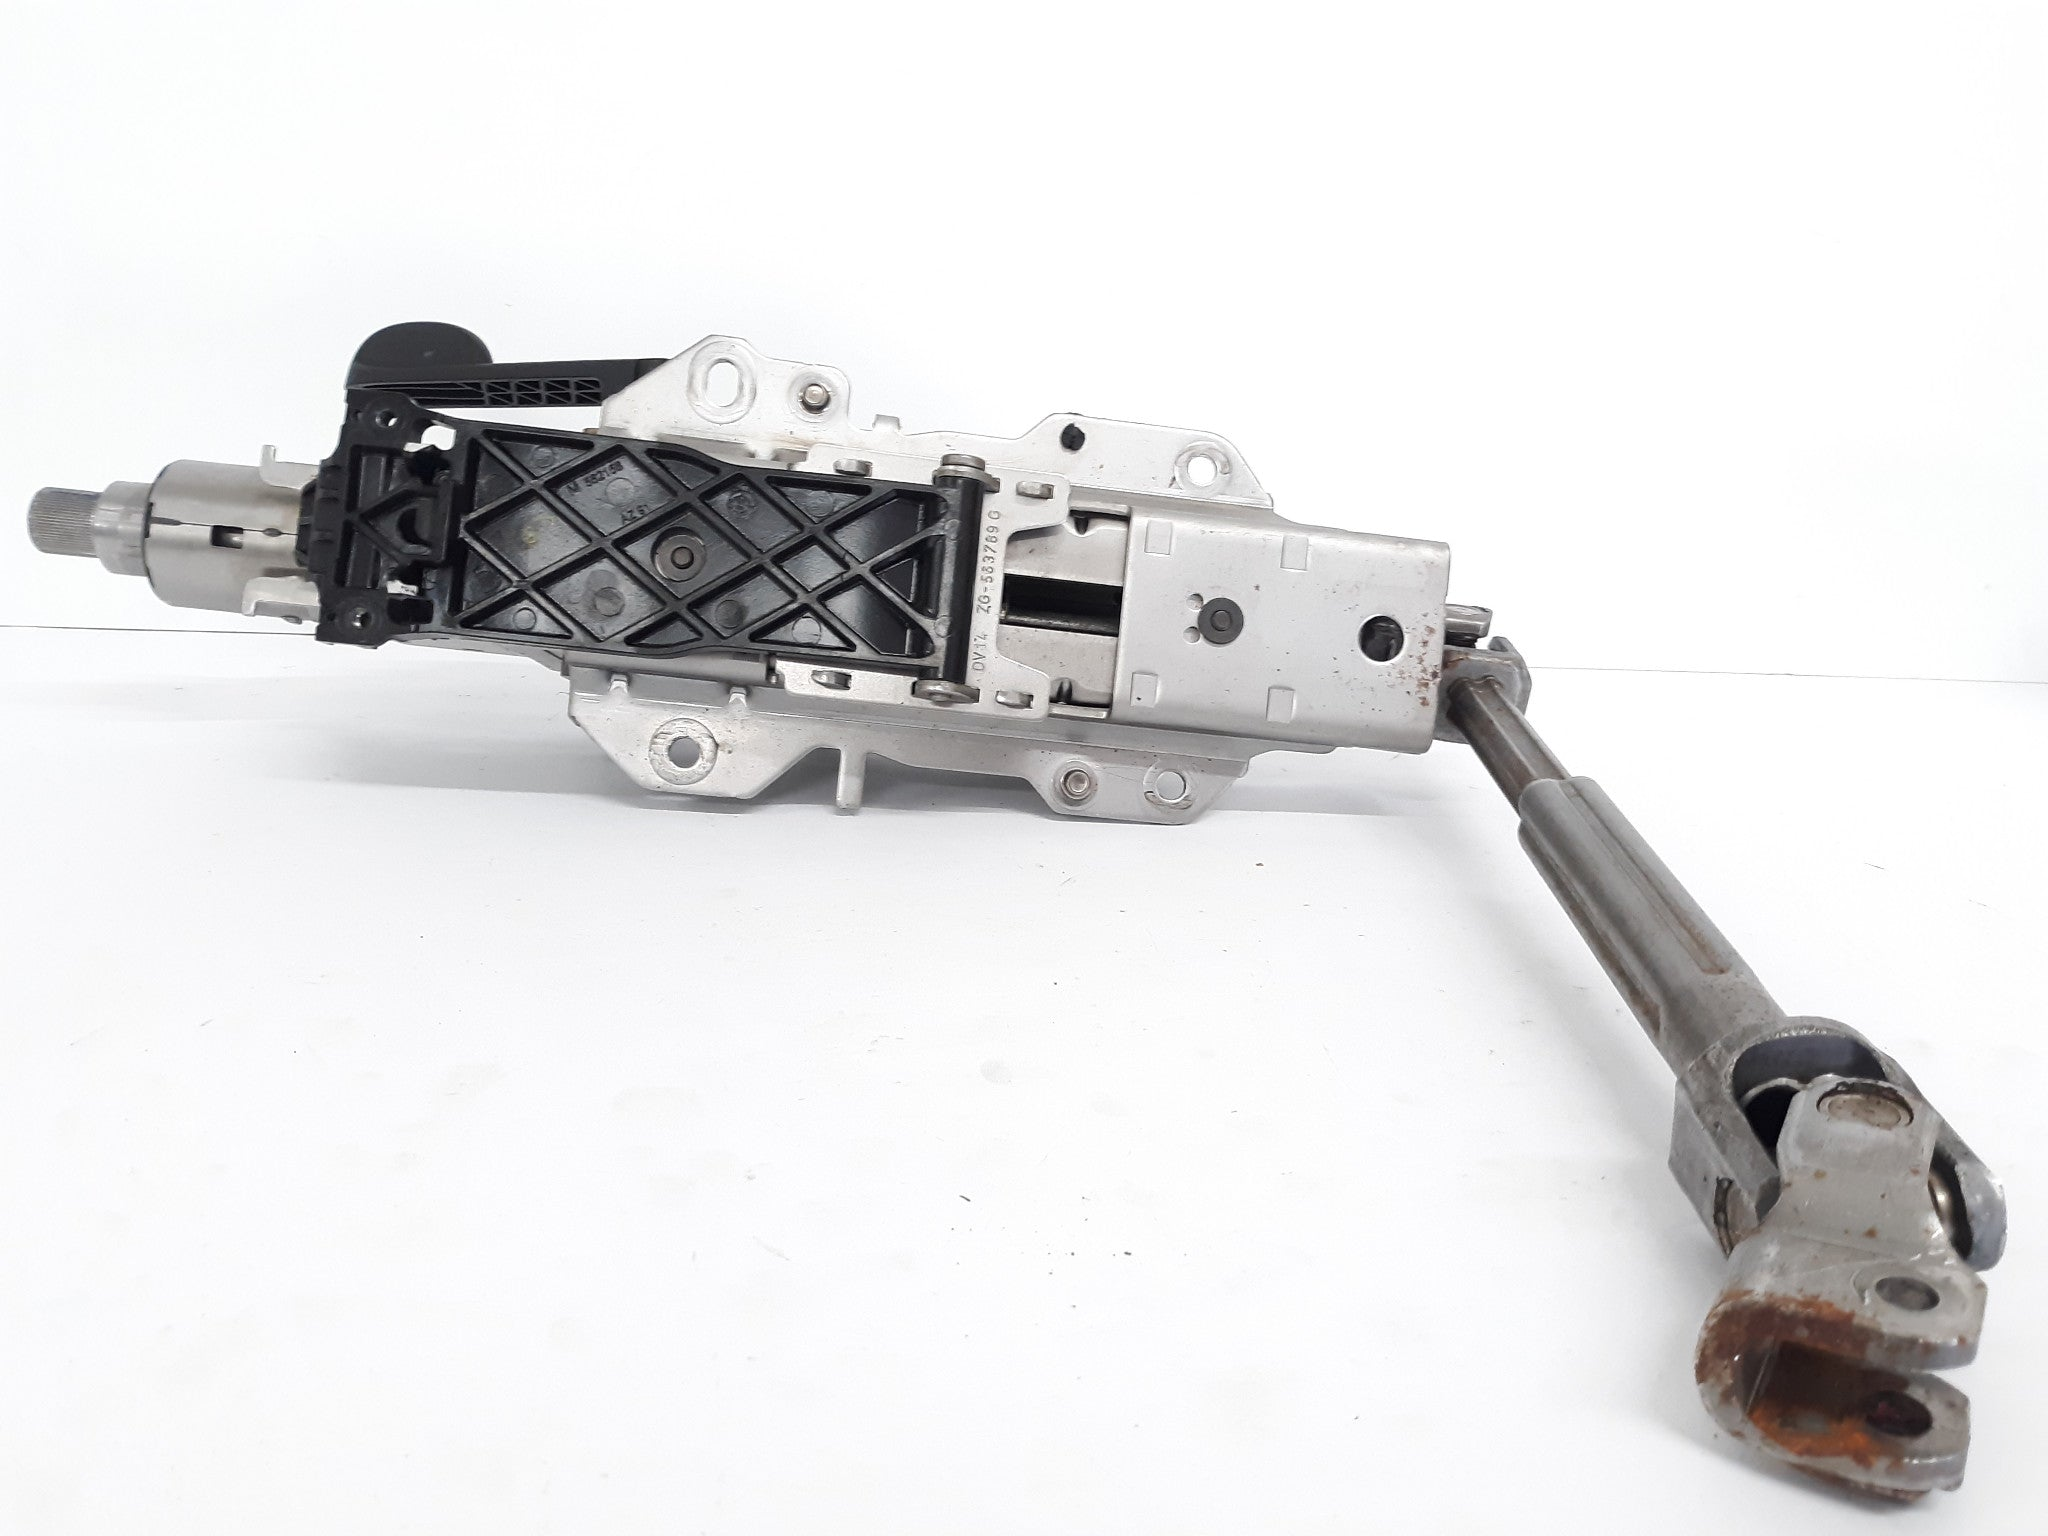 07-15 MINI COOPER R56 R55 R57 LEFT DRIVER SIDE STEERING WHEEL COLUMN 2755517 OEM - Click Receive Auto Parts